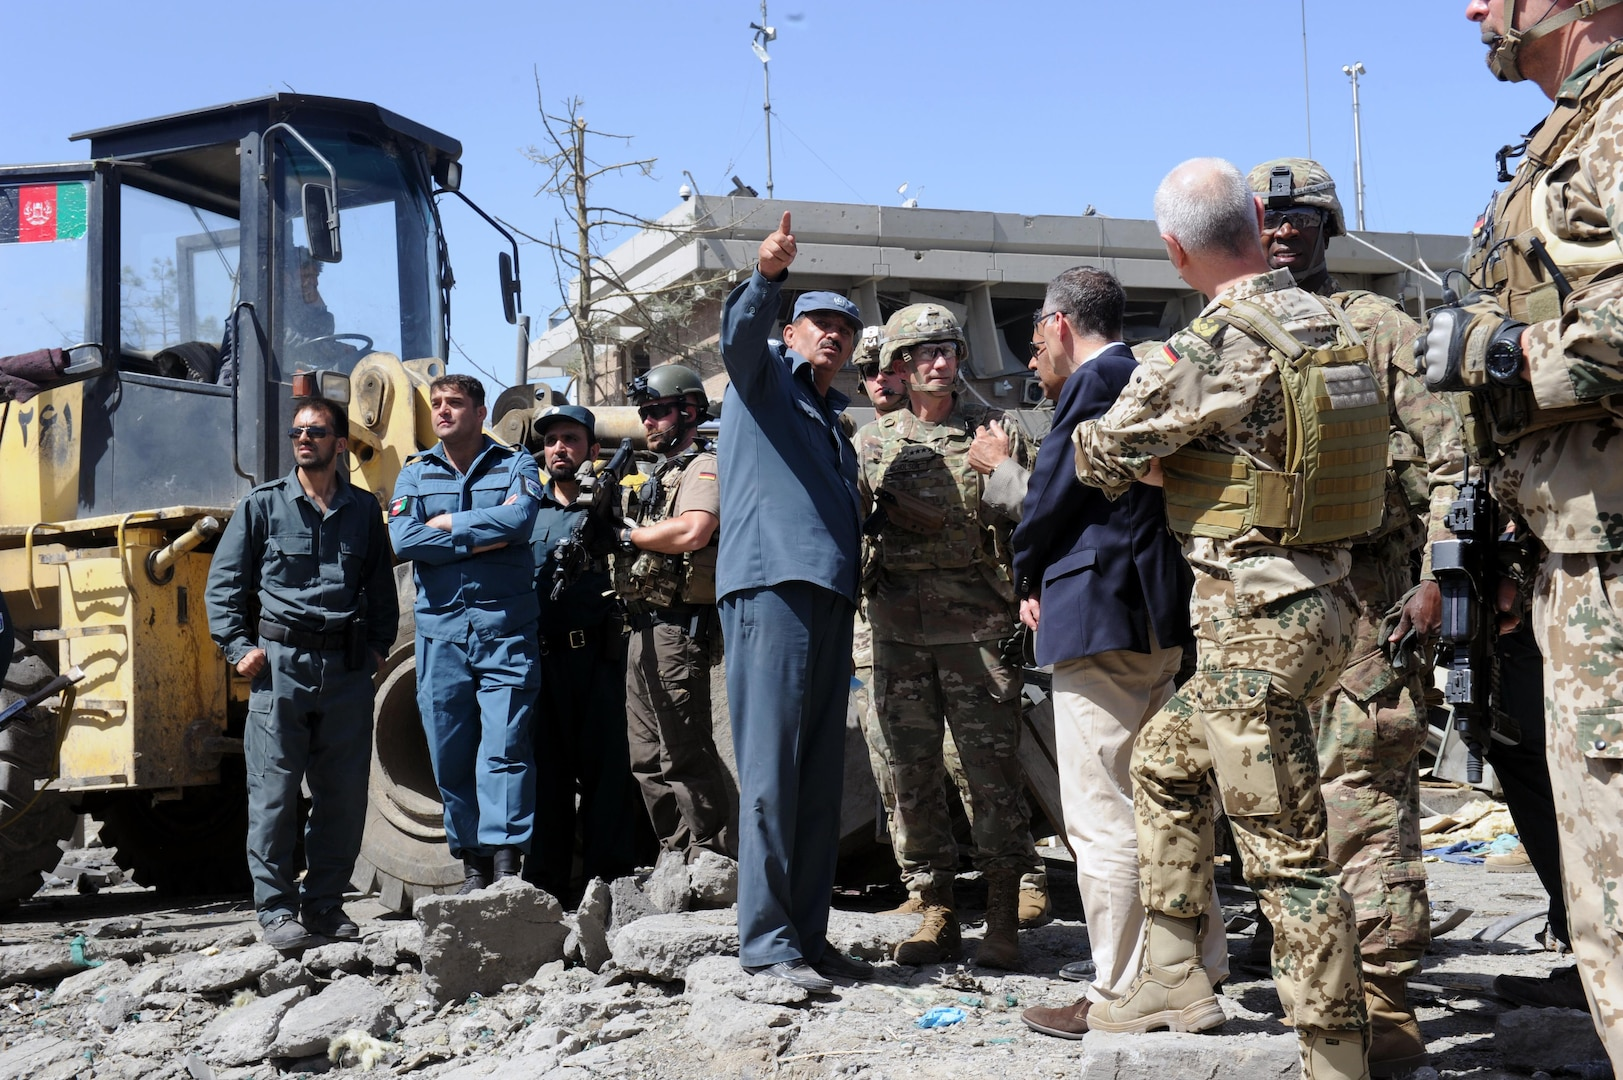 KABUL, Afghanistan (May 31, 2017) — General John Nicholson, Resolute Support commander, RS Chief of Staff Lieutenant General Jurgen Weigt, and RS Command Sergeant Major David M. Clark visit the blast site after the deadly attack that occurred here today to survey the damage and support emergency. A vehicle-borne improvised explosive device was detonated near Zambaq Square outside the Green Zone, near diplomatic and government facilities. (U.S. Navy photo by Lt. j.g. Egdanis Torres Sierra, Resolute Support Public Affairs – Afghanistan)